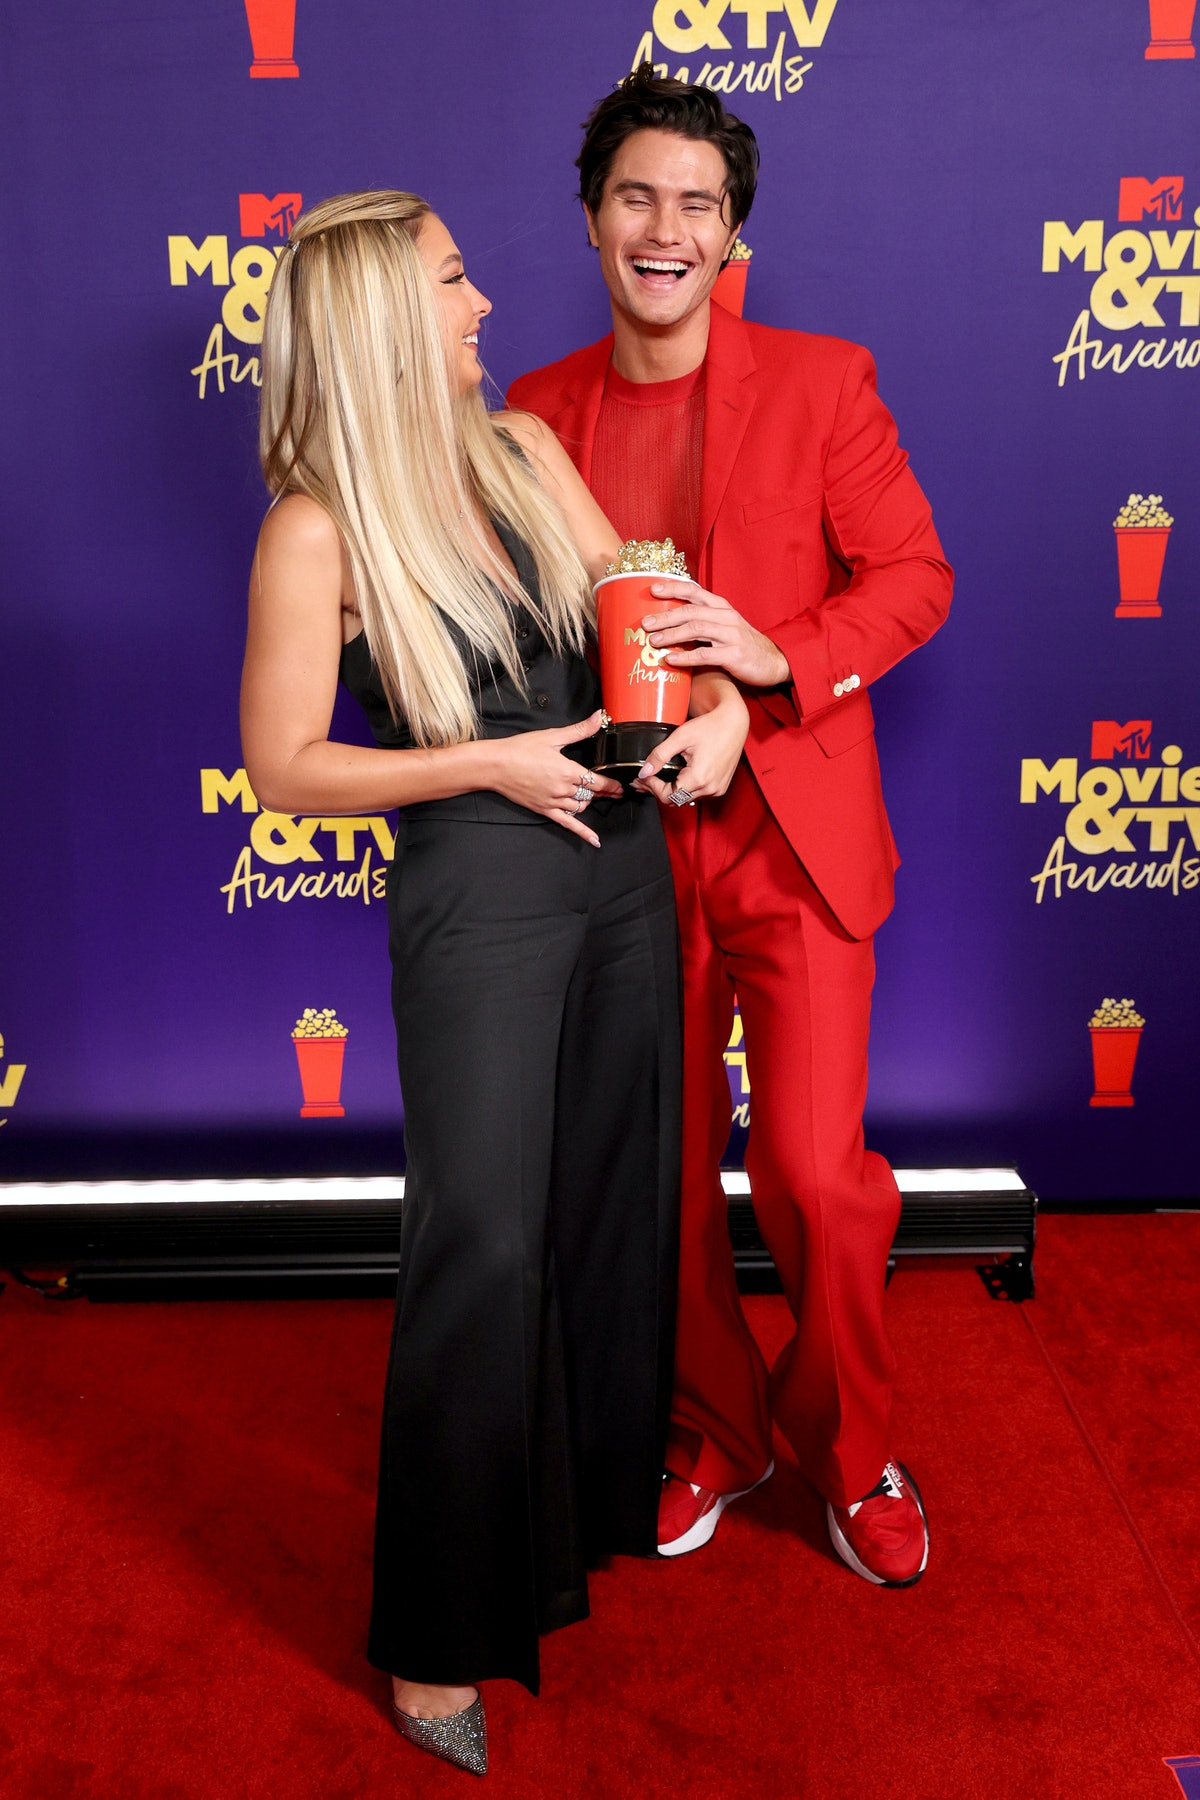 LOS ANGELES, CALIFORNIA - MAY 16: (L-R) Madelyn Cline and Chase Stokes, winners of the Best Kiss awa...